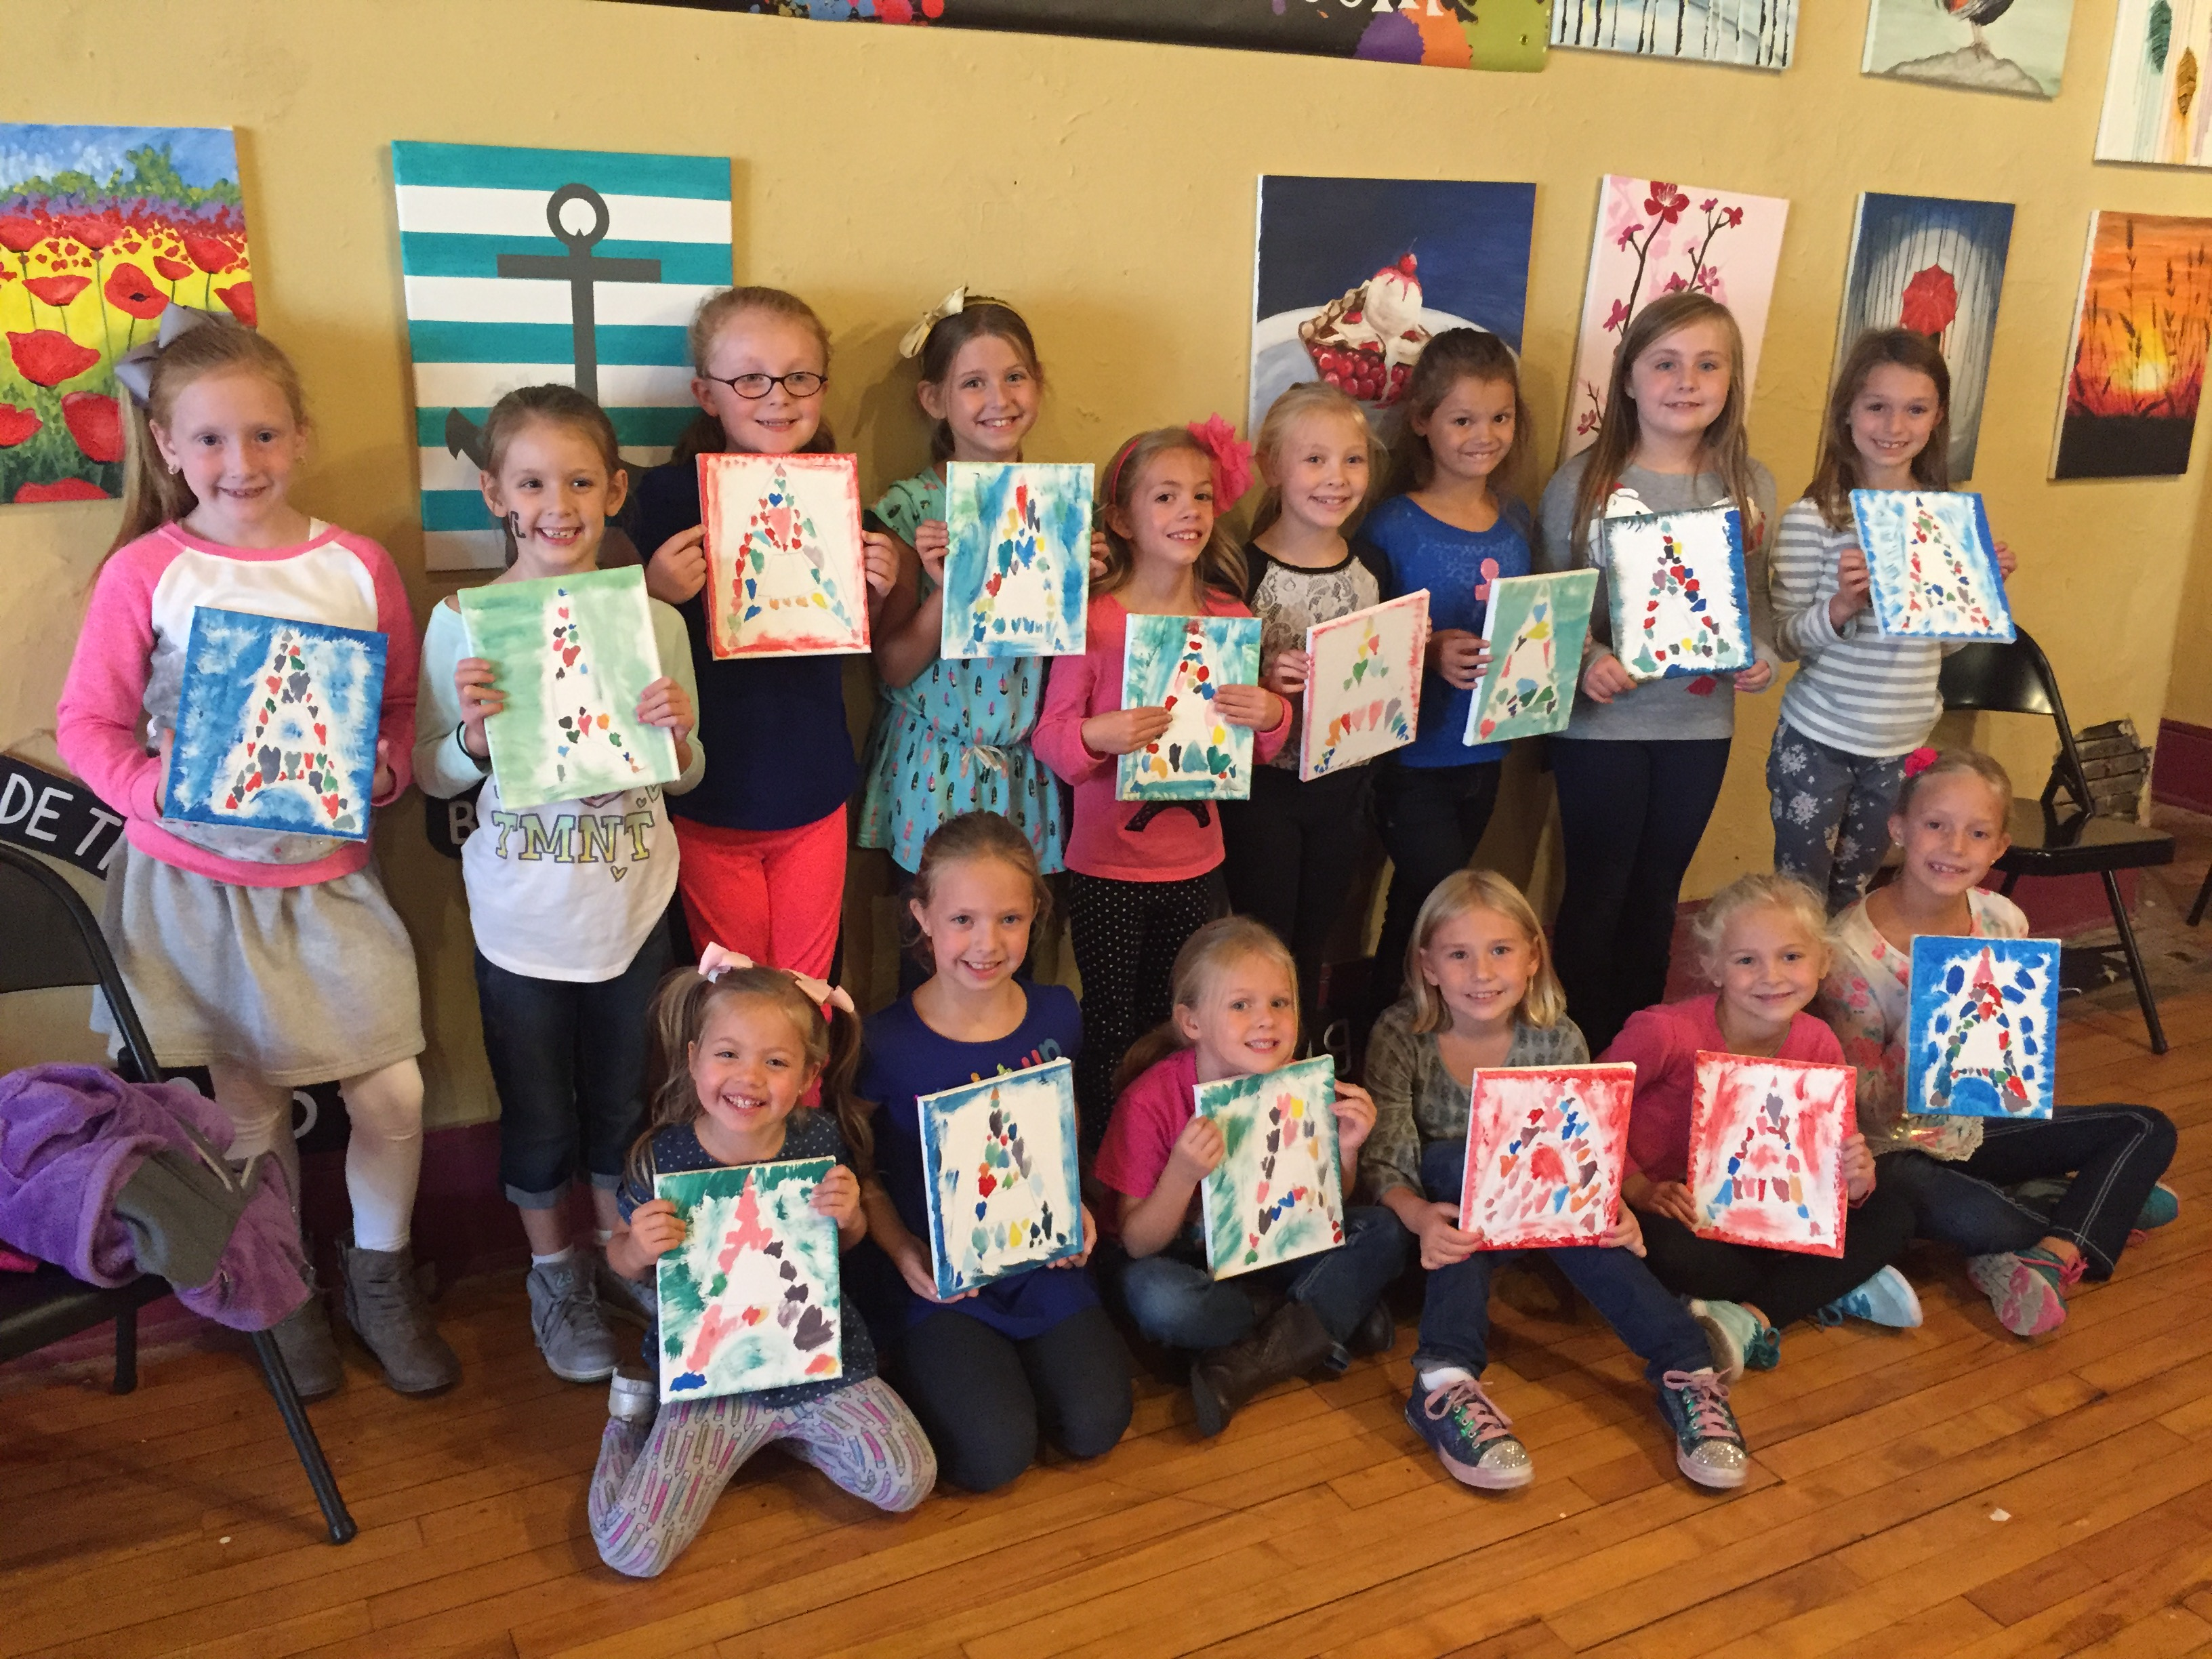 Evelyn painted Eiffel towers with her birthday party guests on 10/8/16.